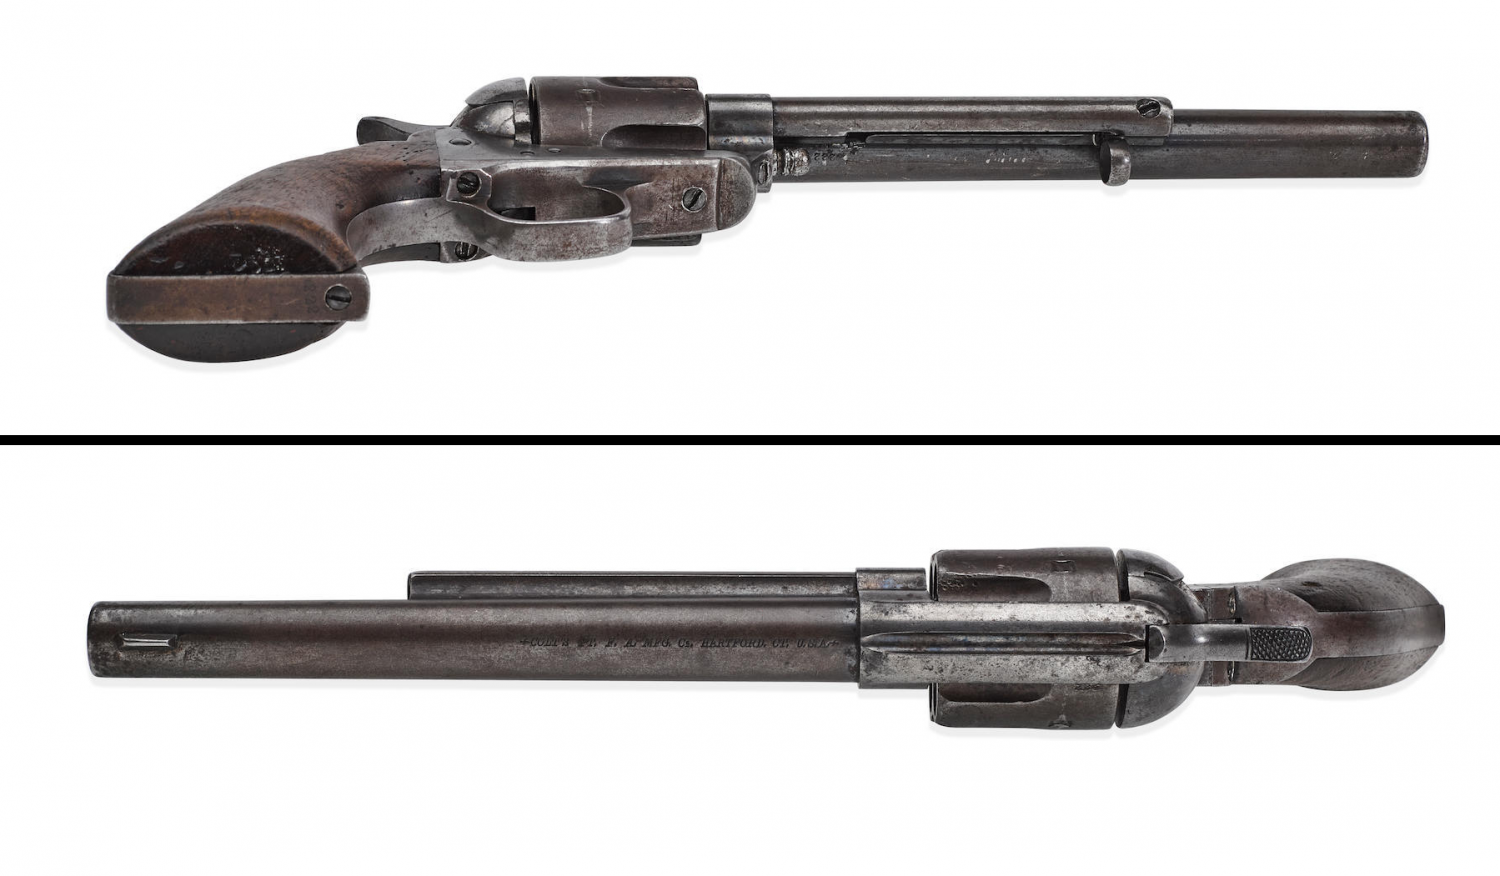 Although the coroner's report officially stated that Ringo killed himself with this Colt SAA, rumors persist that he may have been gunned down by someone else - possibly known adversaries Wyatt Earp or Doc Holliday.